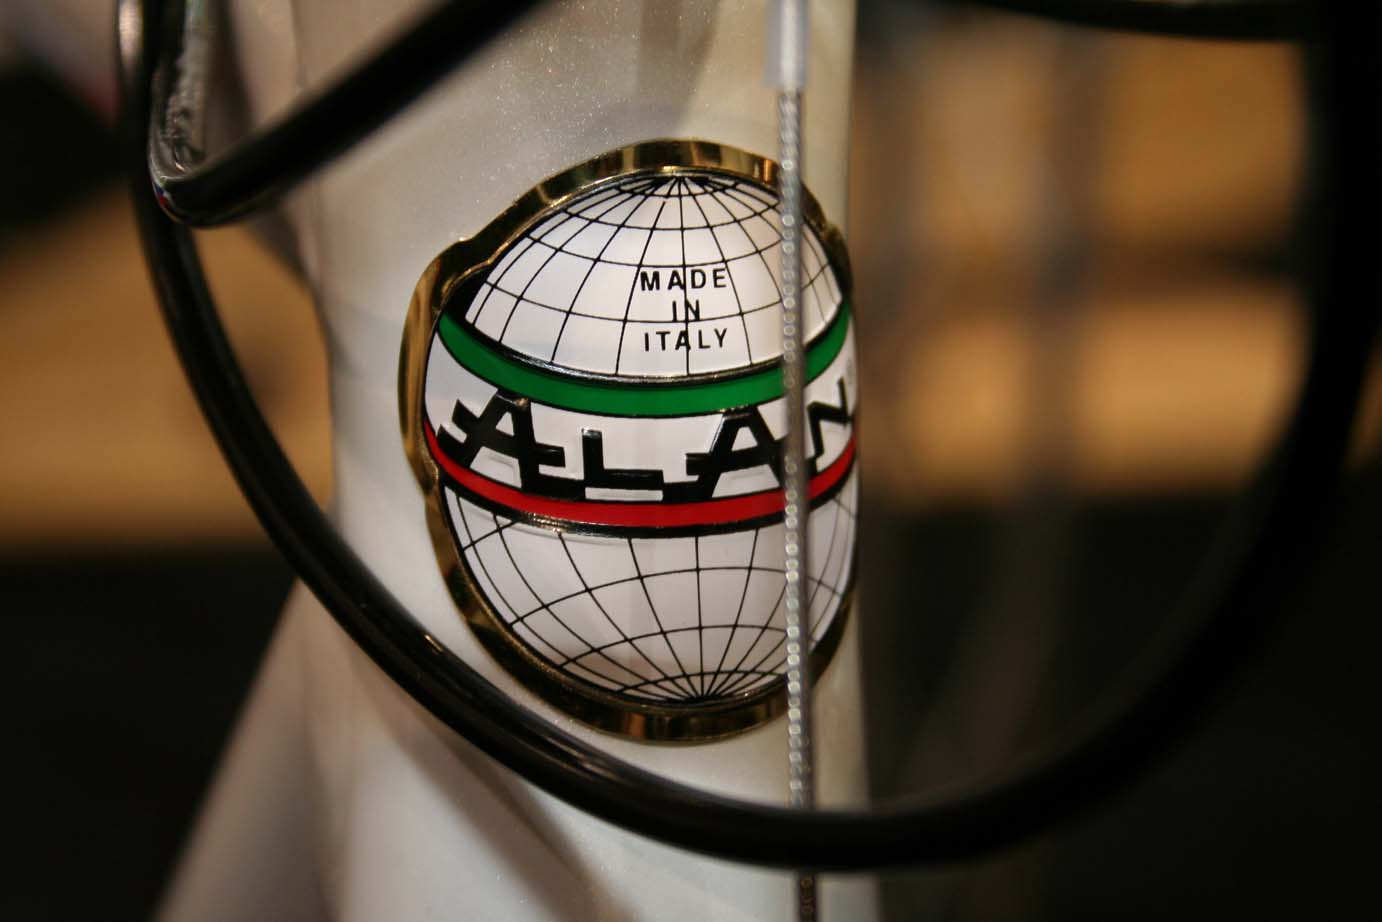 Alan, made in Italy. Has any other brand won more world titles?